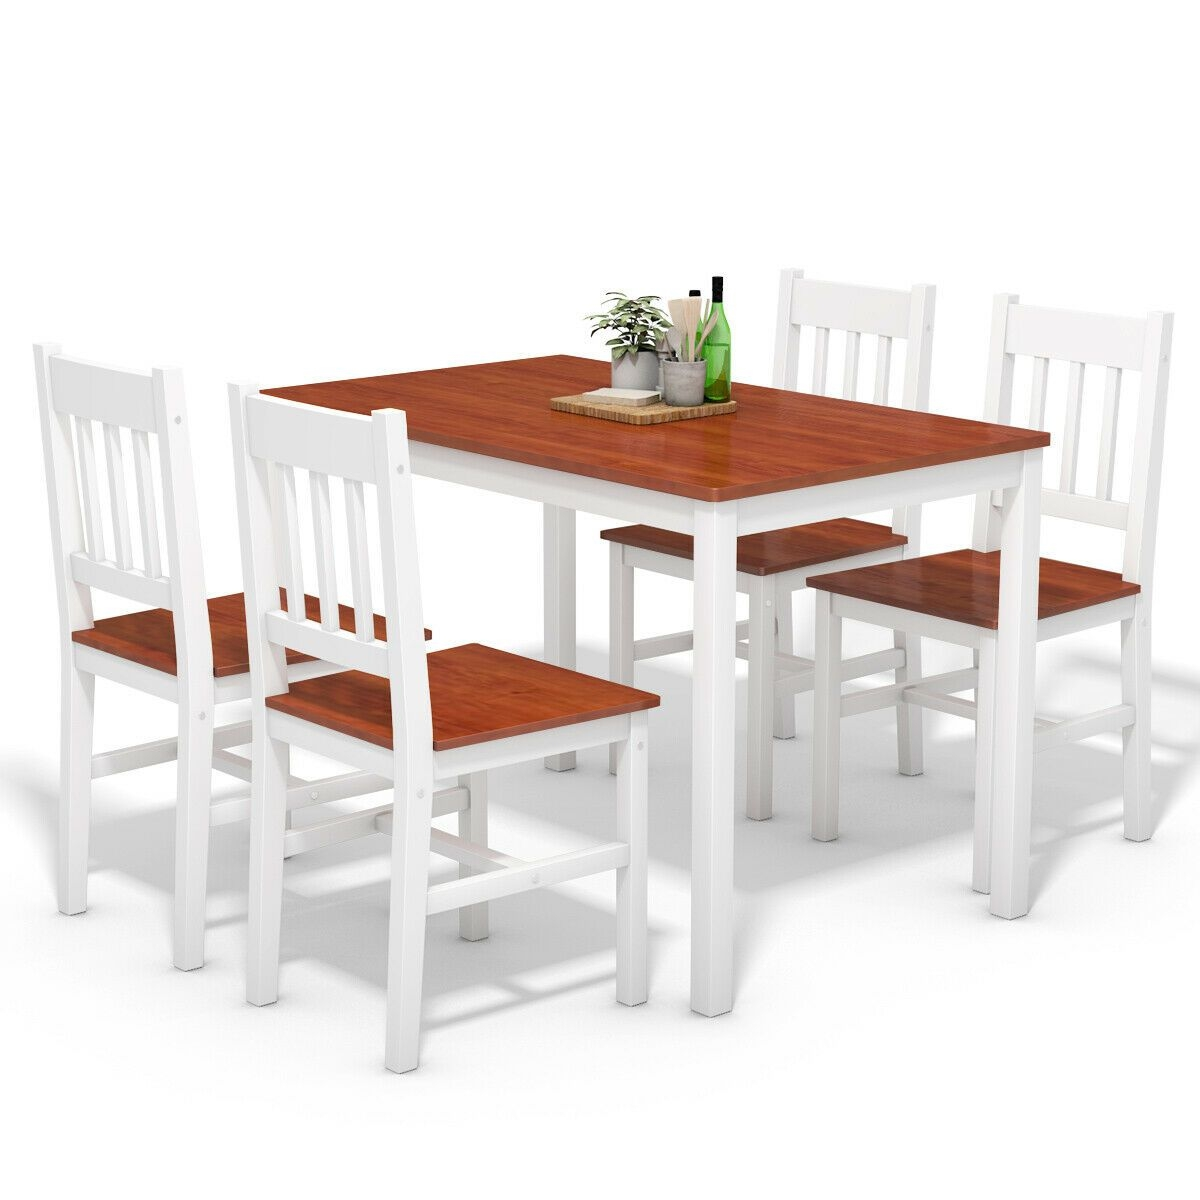 Costway Costway 5Pcs Pine Wood Dinette Dining Set Table And 4 Chairs Home Kitchen Furniture